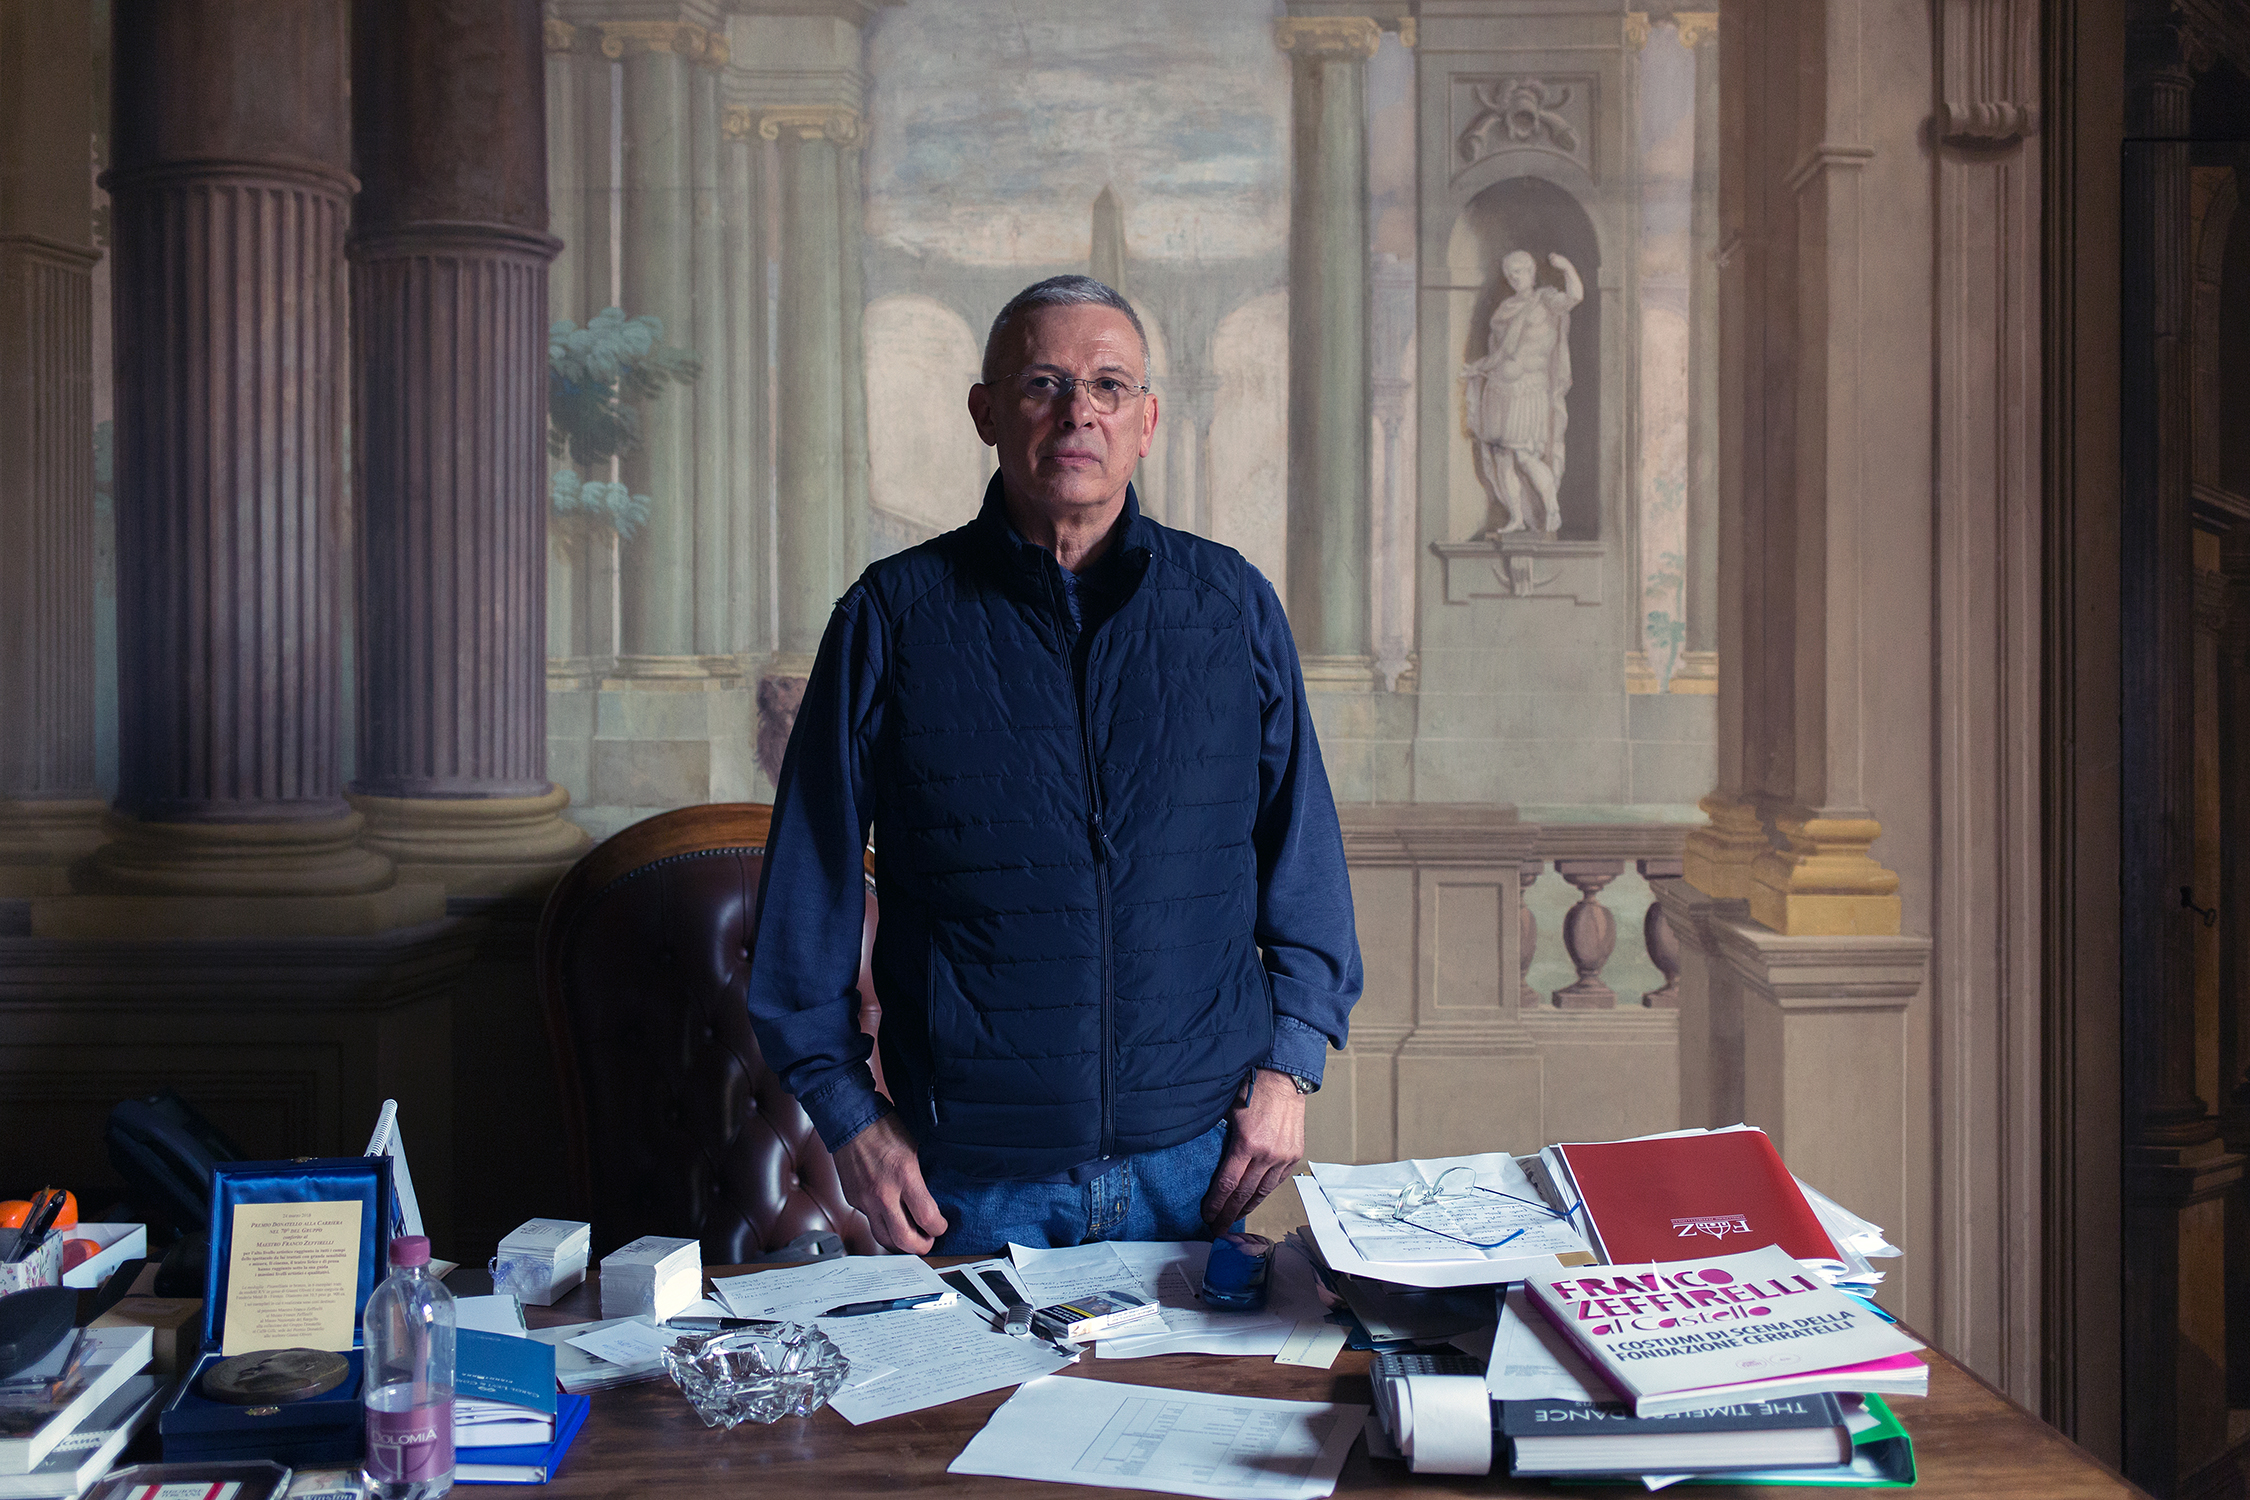 Pippo Zeffirelli, adoptive son of Franco Zeffirelli and vice President of the Zeffirelli Foundation (in charge of the Museum), in his study in Florence.